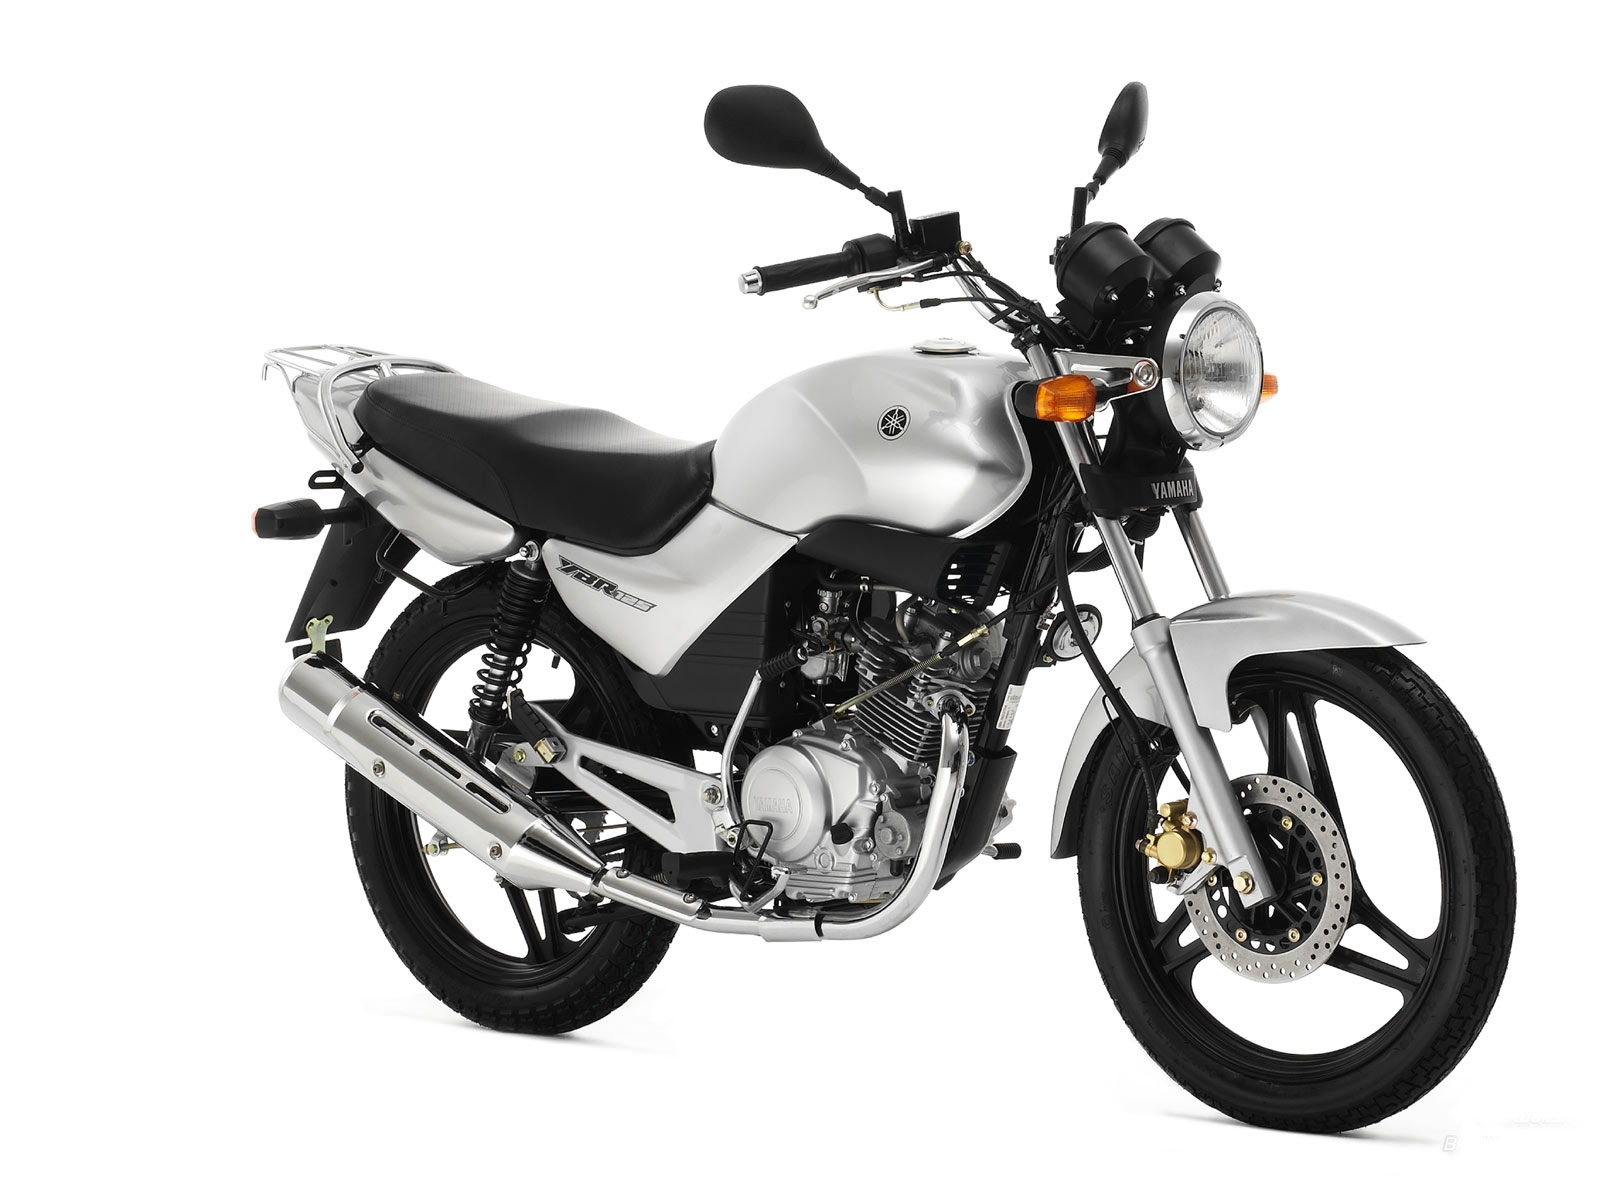 2005 YAMAHA YBR 125 insurance information, wallpapers